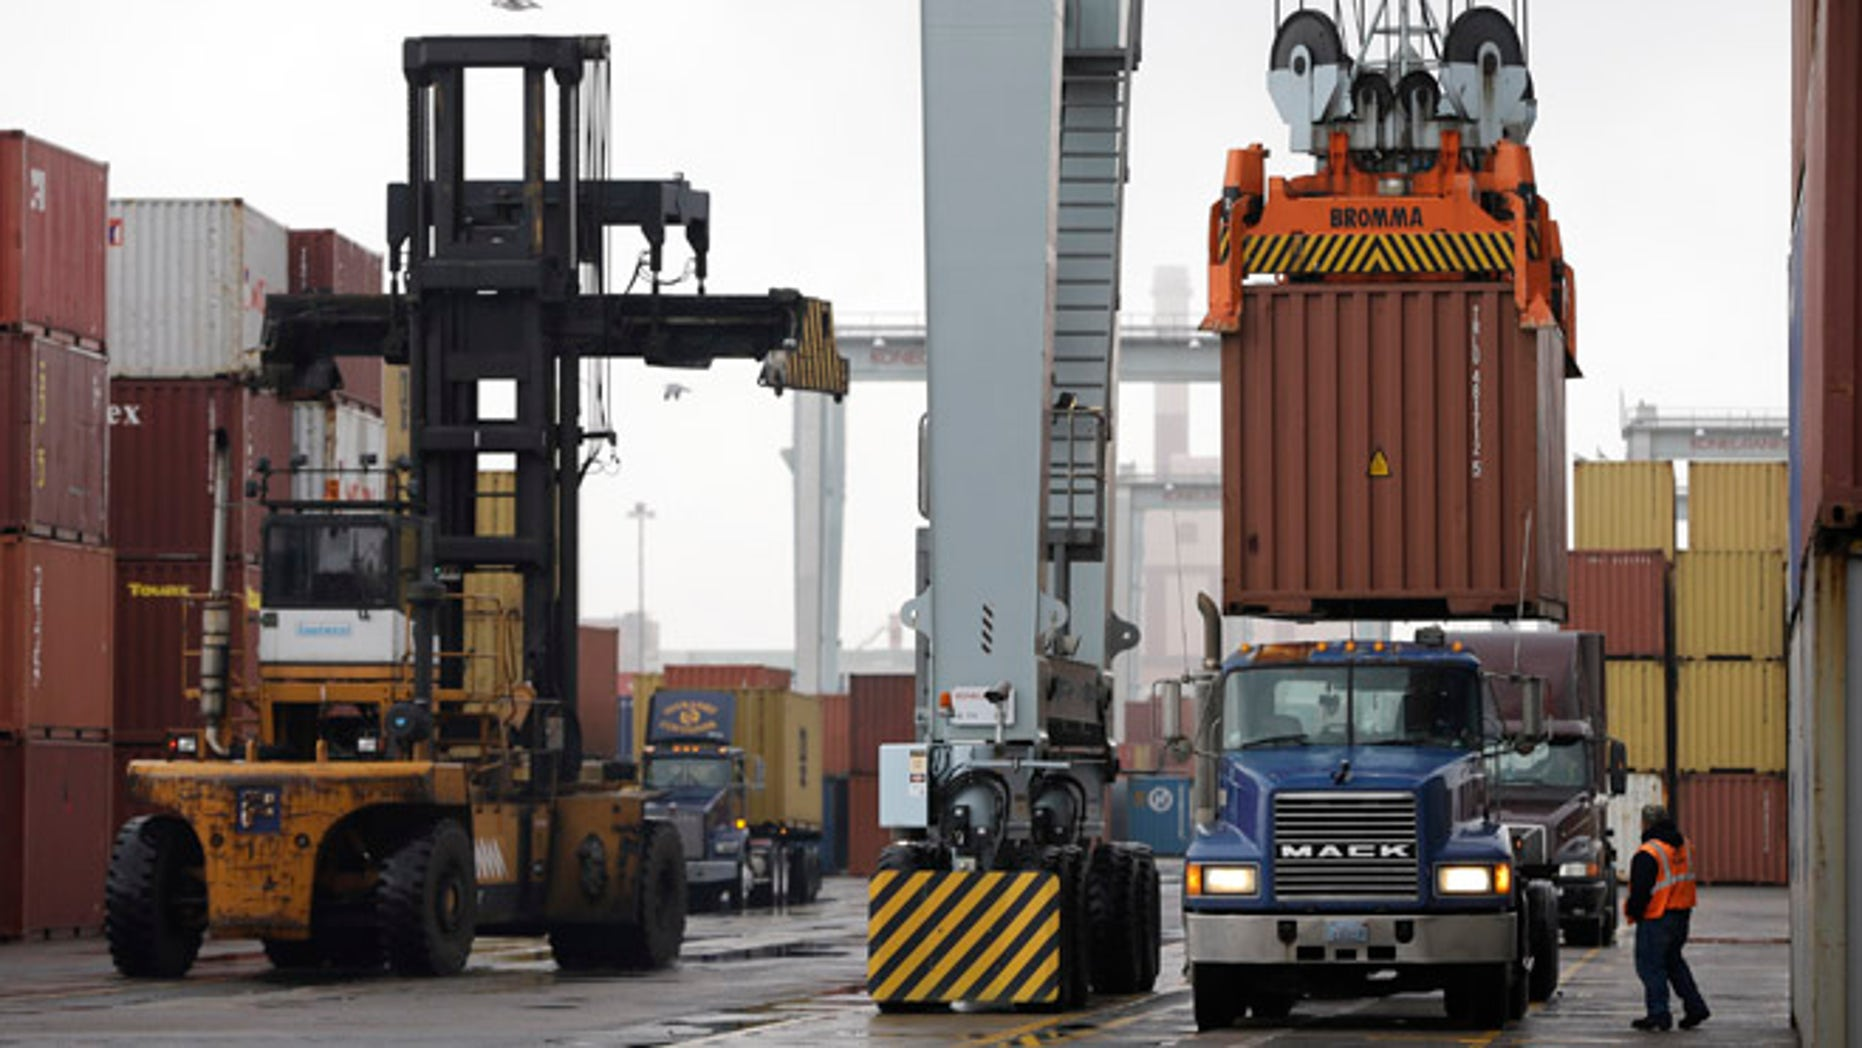 Dec. 18, 2012: A truck driver watches as a freight container, right, is lowered at the Port of Boston.